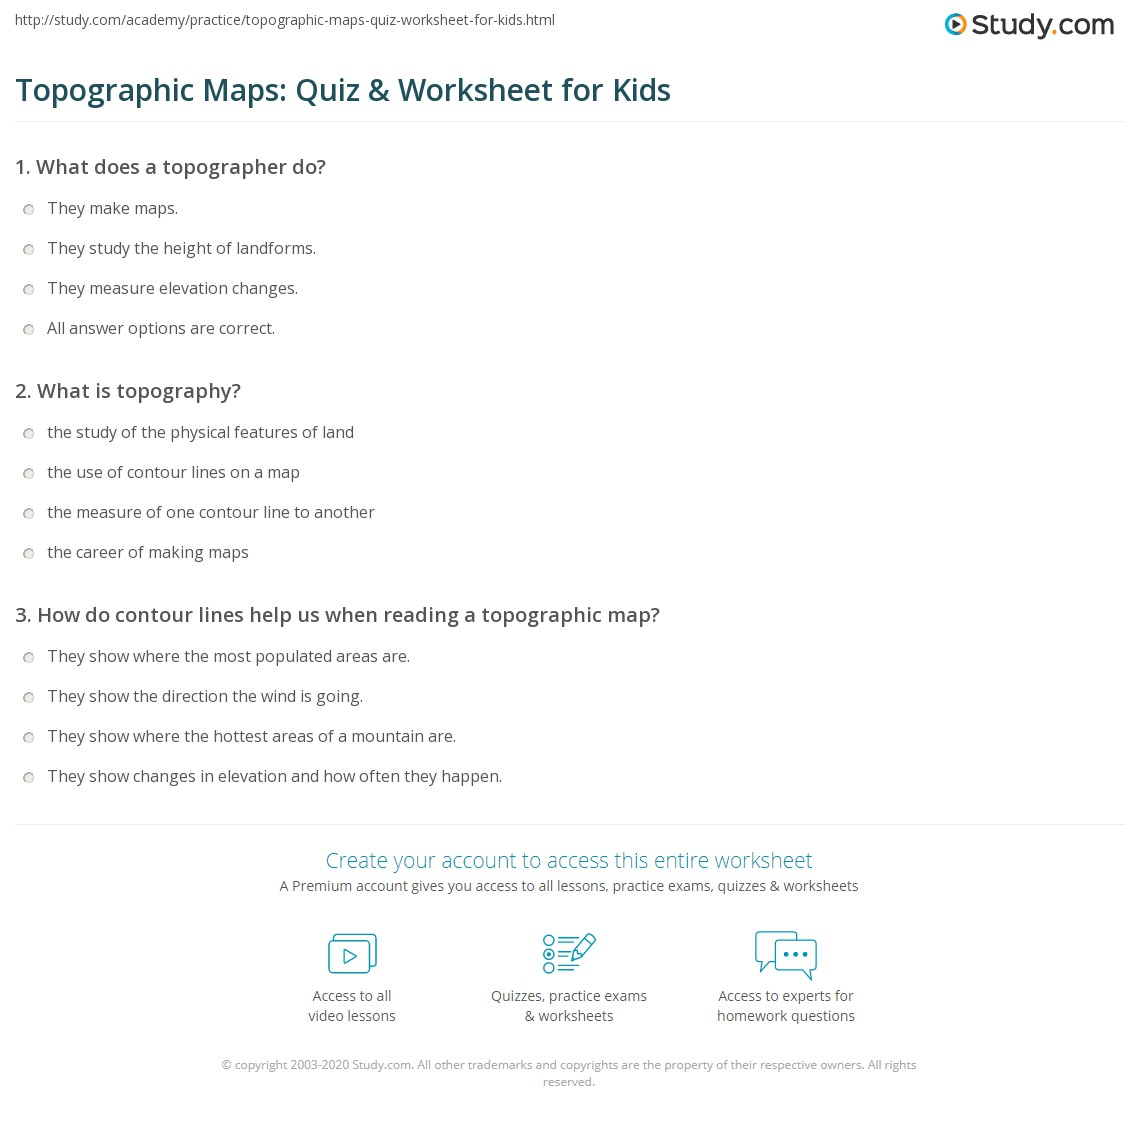 Topographic Maps: Quiz & Worksheet for Kids  Study.com